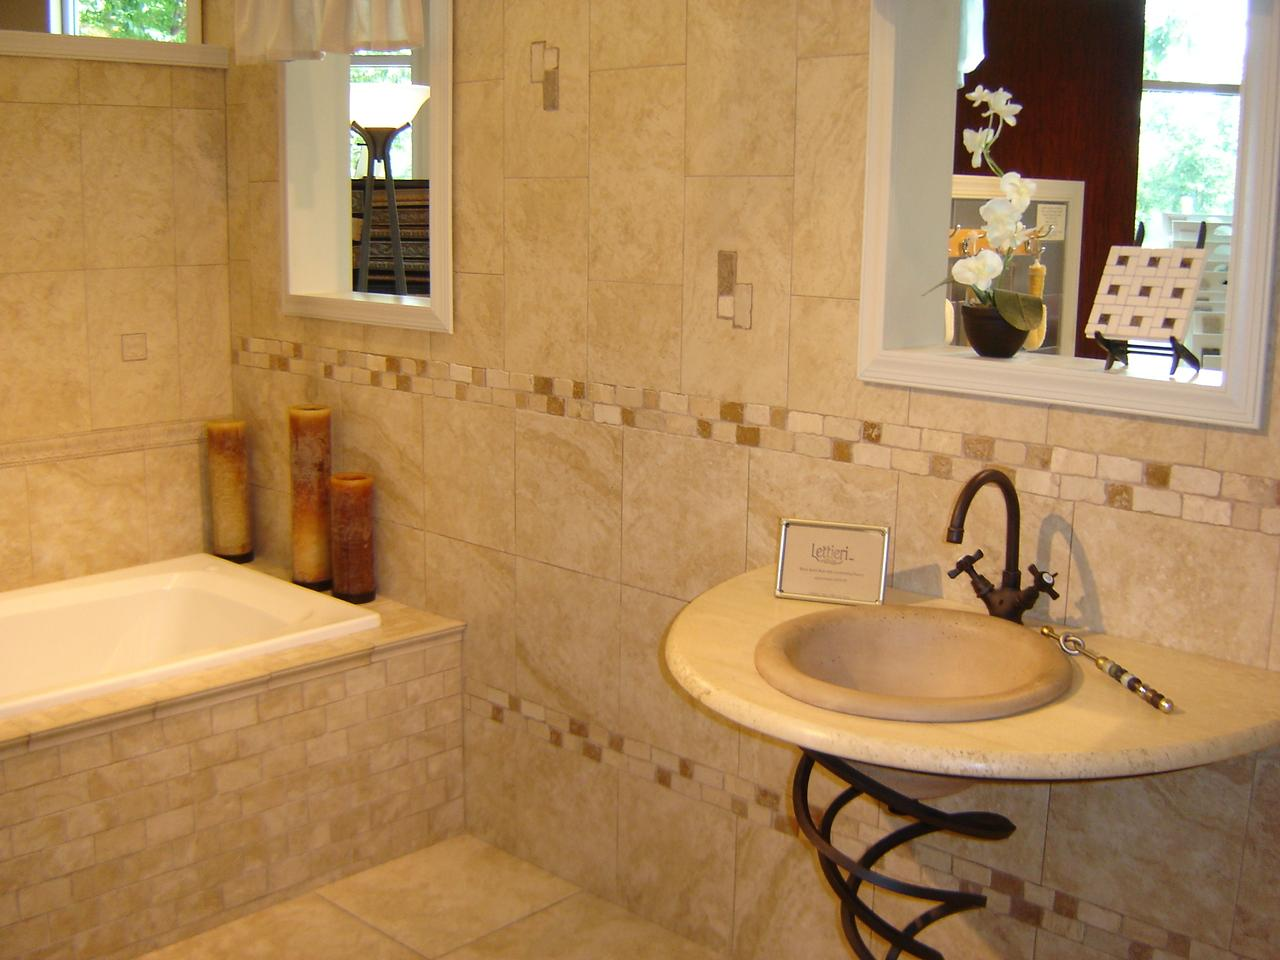 Ceramic Tile Bathroom 25 Wonderful Ideas And Pictures Of Decorative Bathroom Tile Borders